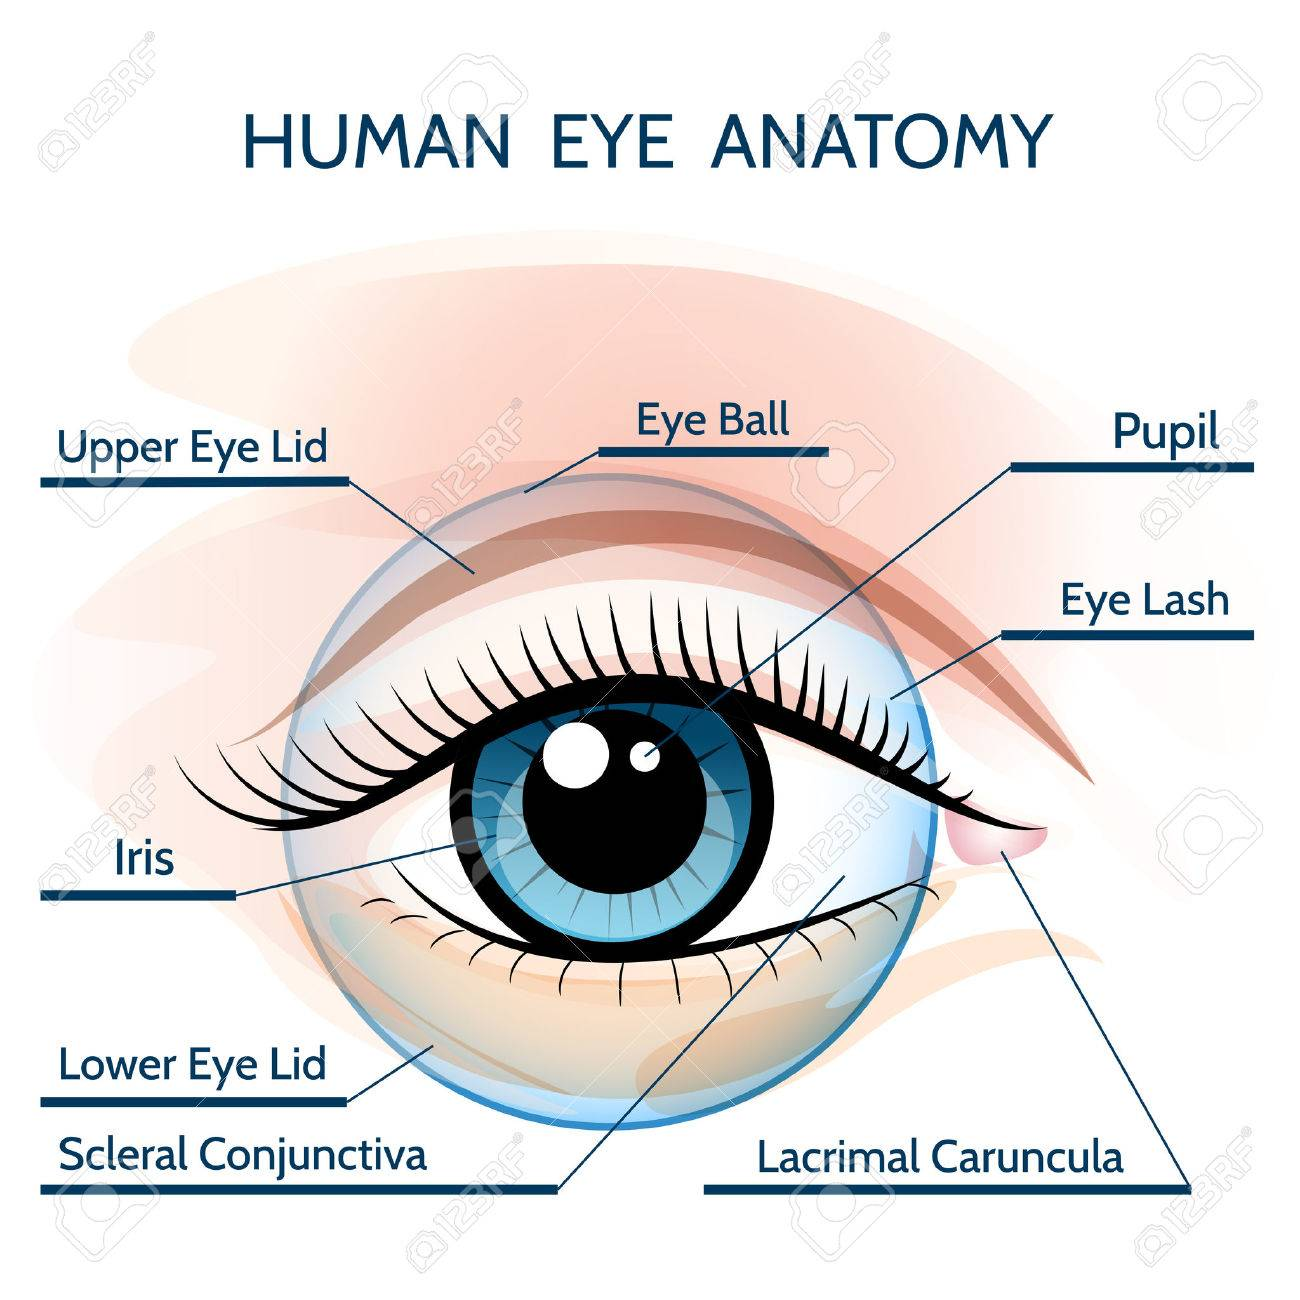 Human Eye Anatomy Illustration. Only Free Font Used. Royalty Free ...